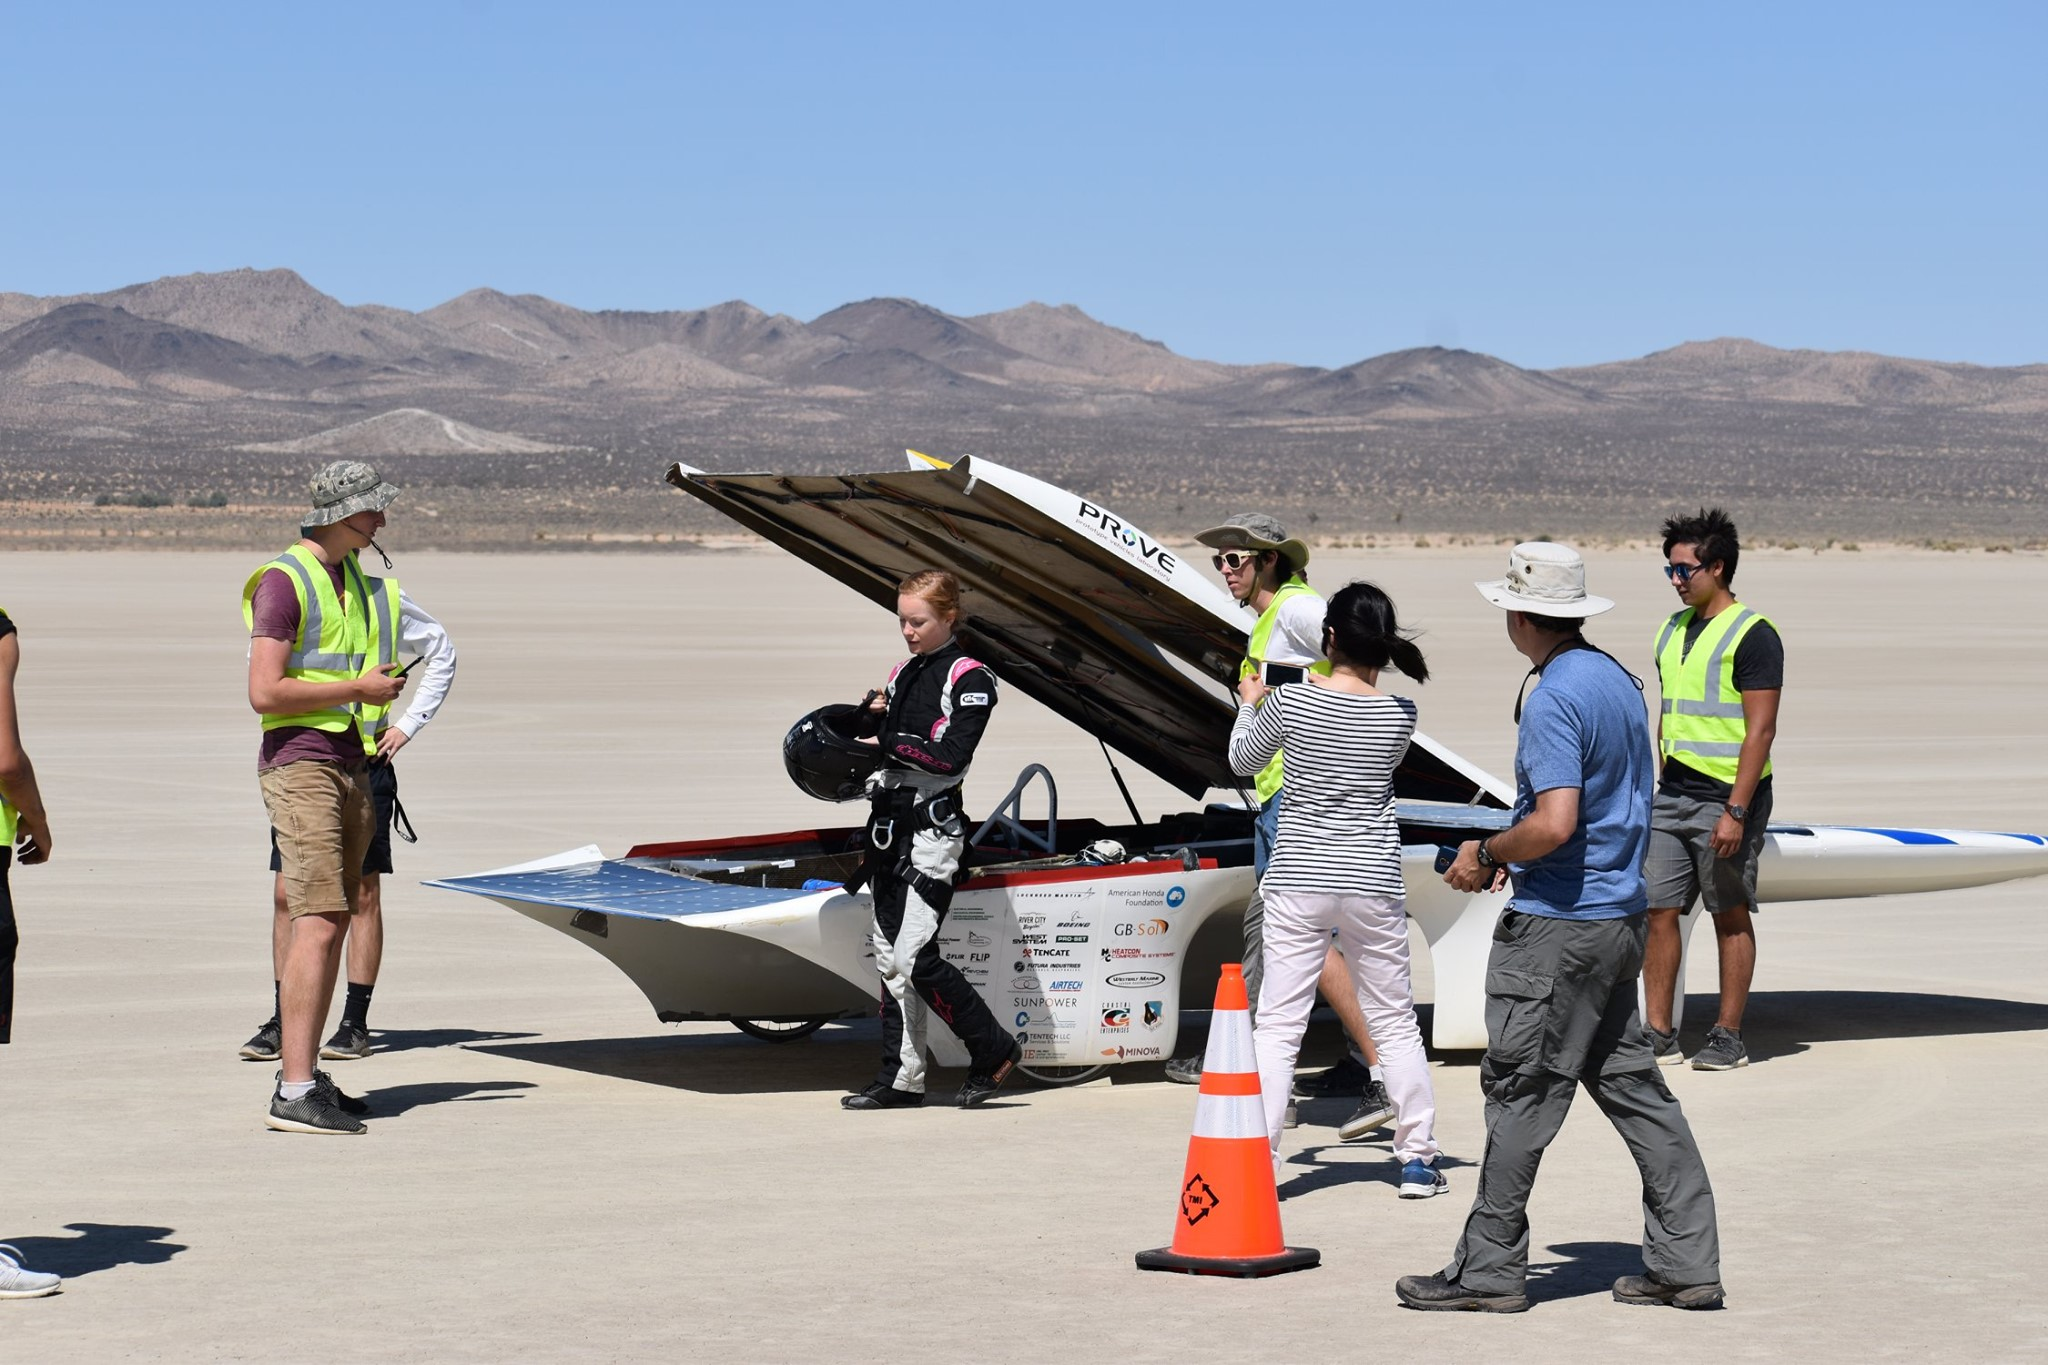 Driver Lacey Davis, an aerospace engineering major from Salinas, California, readies to attempt to set a new record in Cal Poly's Prototype Vehicle Lab's solar car, Dawn, at El Mirage Lake in Southern California. The car clocked 51 mph, below the 56 mph world record, but students are optimistic that the car is capable of hitting 65 mph when they make another attempt next summer.